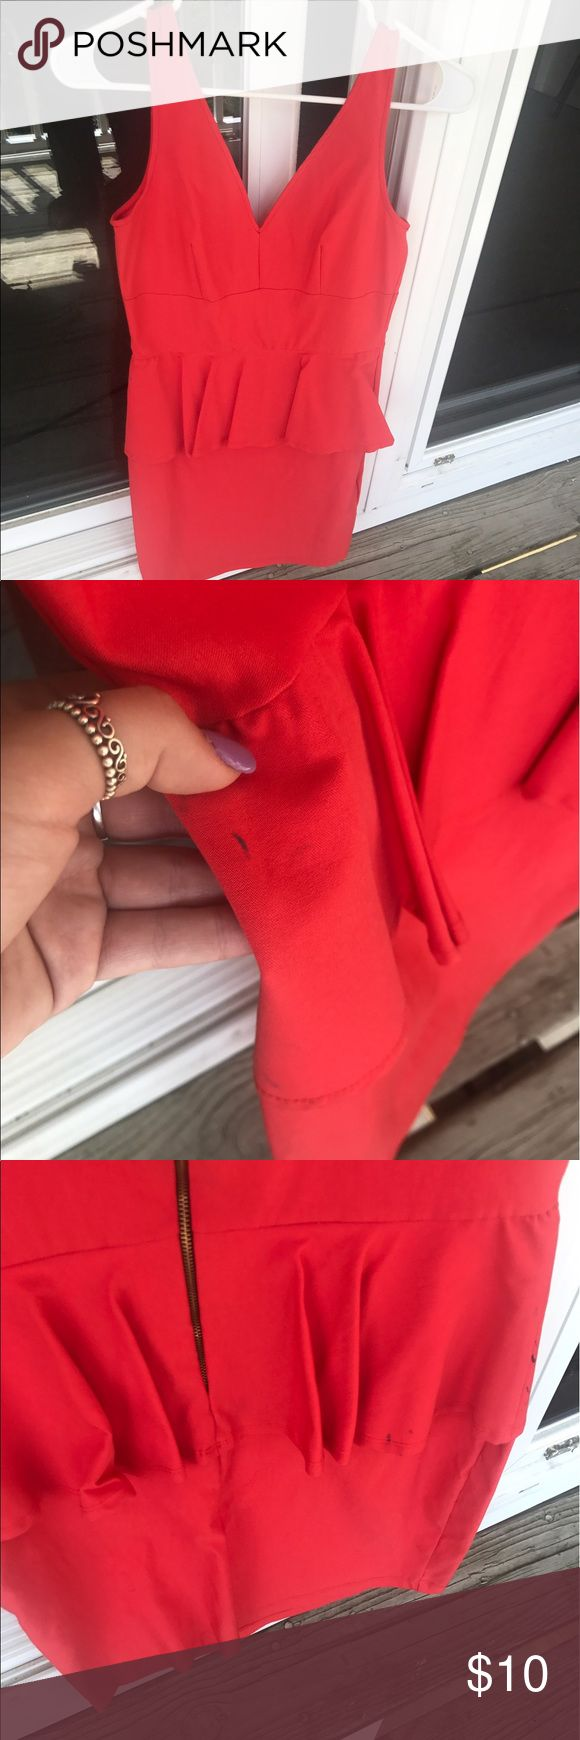 Red peplum dress Red, peplum dress. Stains are pictured above. Size medium. Love Culture Dresses Mini